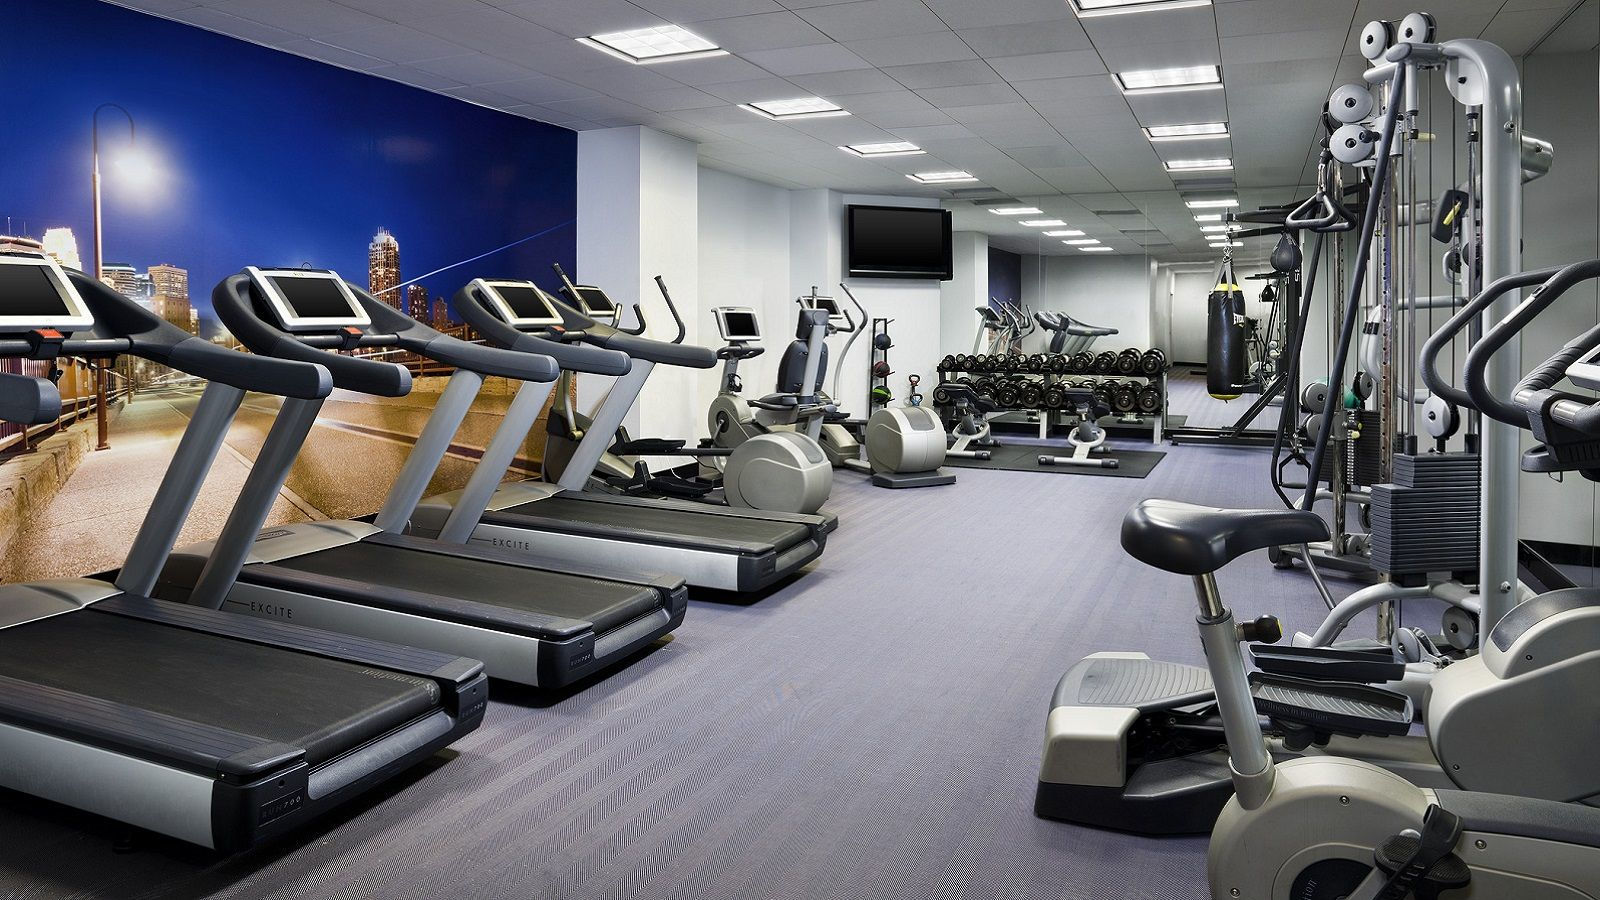 FIT GYM Hotel Amenities